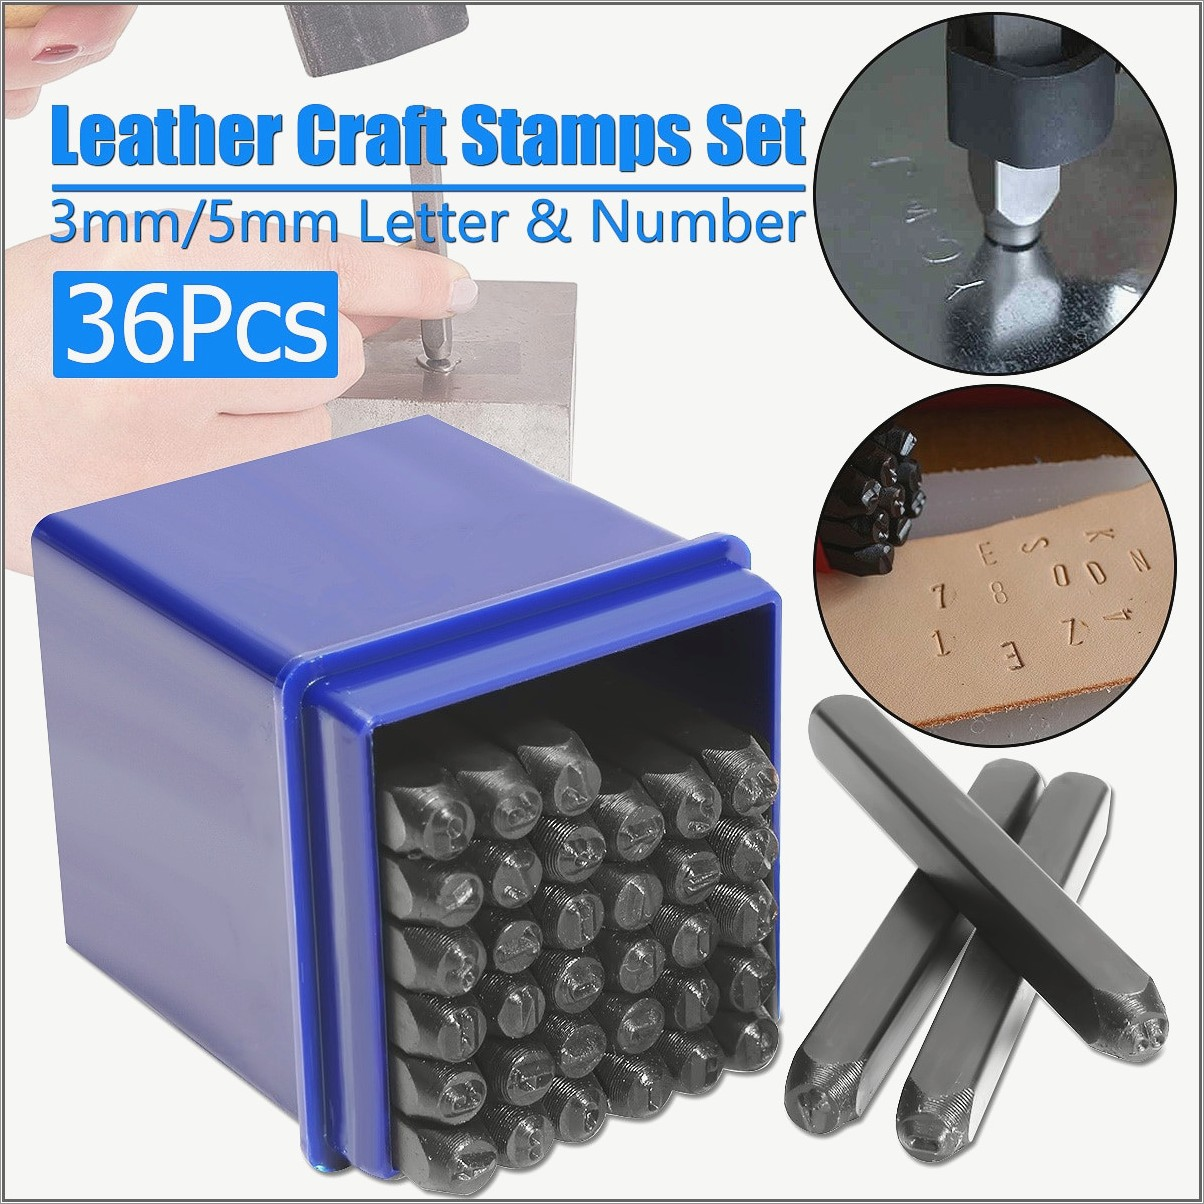 1 Inch Metal Letter Stamps